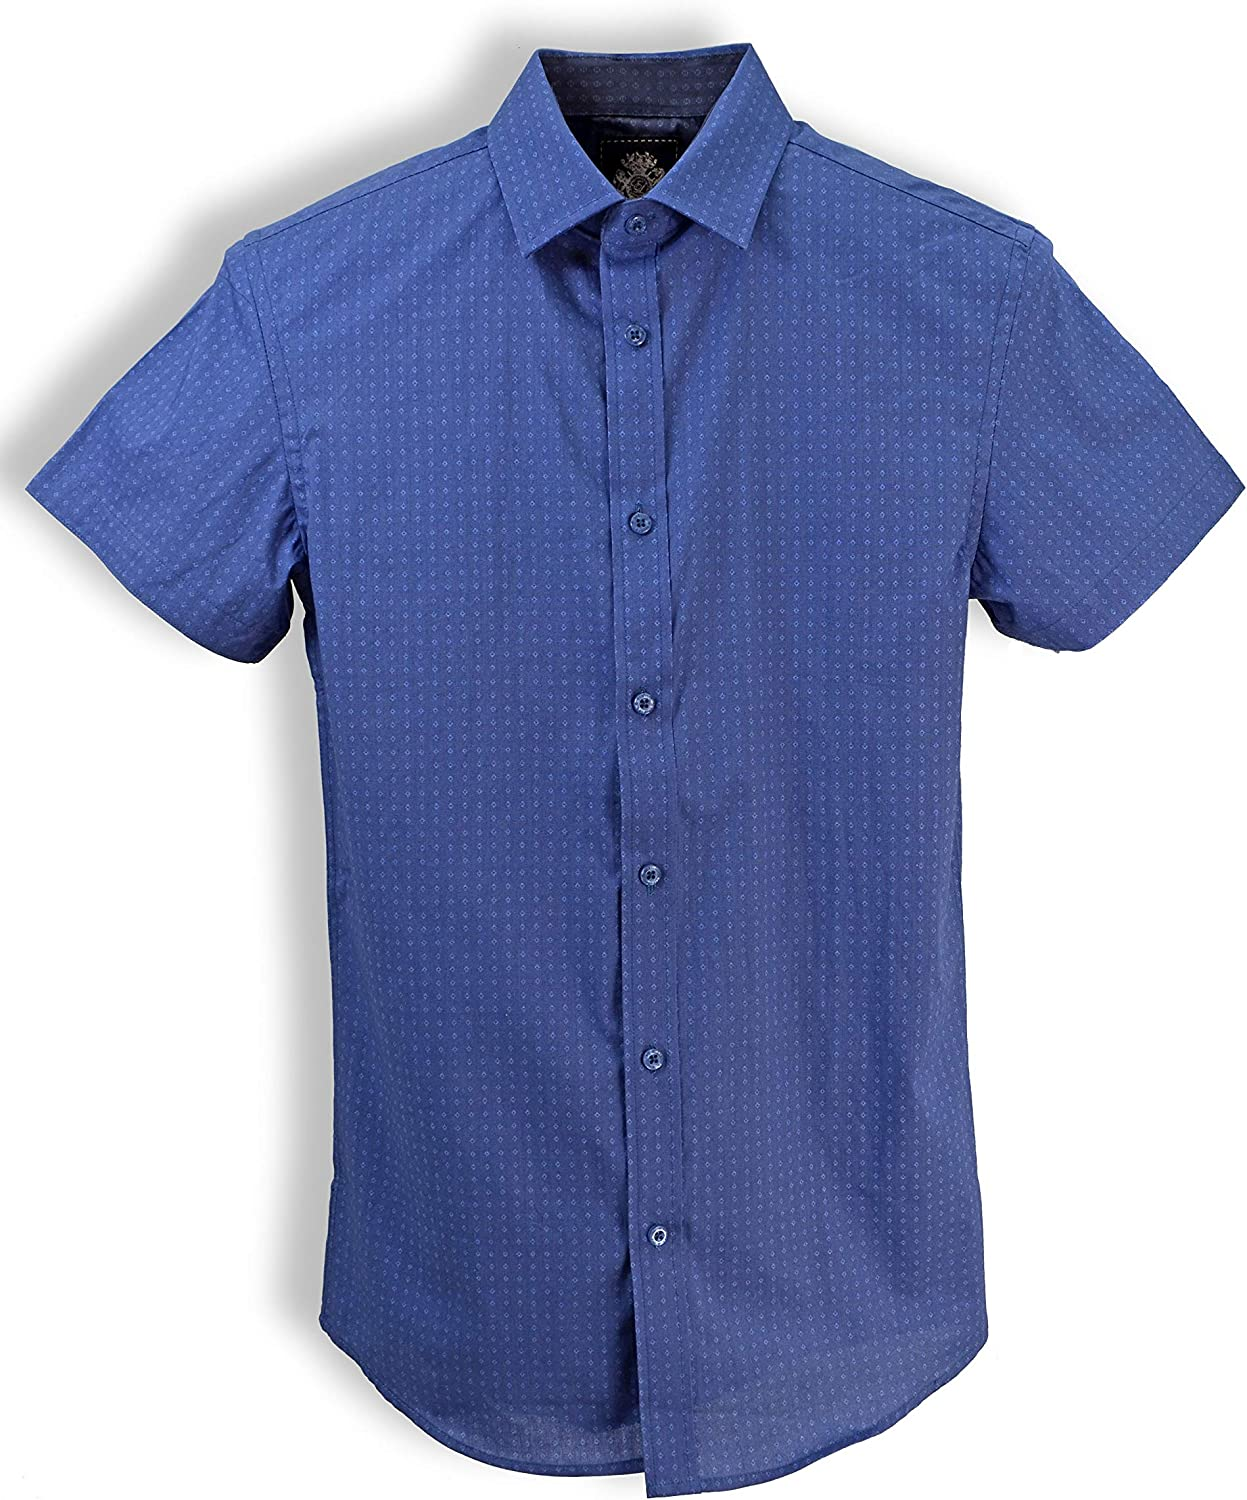 English Laundry Short-Sleeve Diamond Shirt